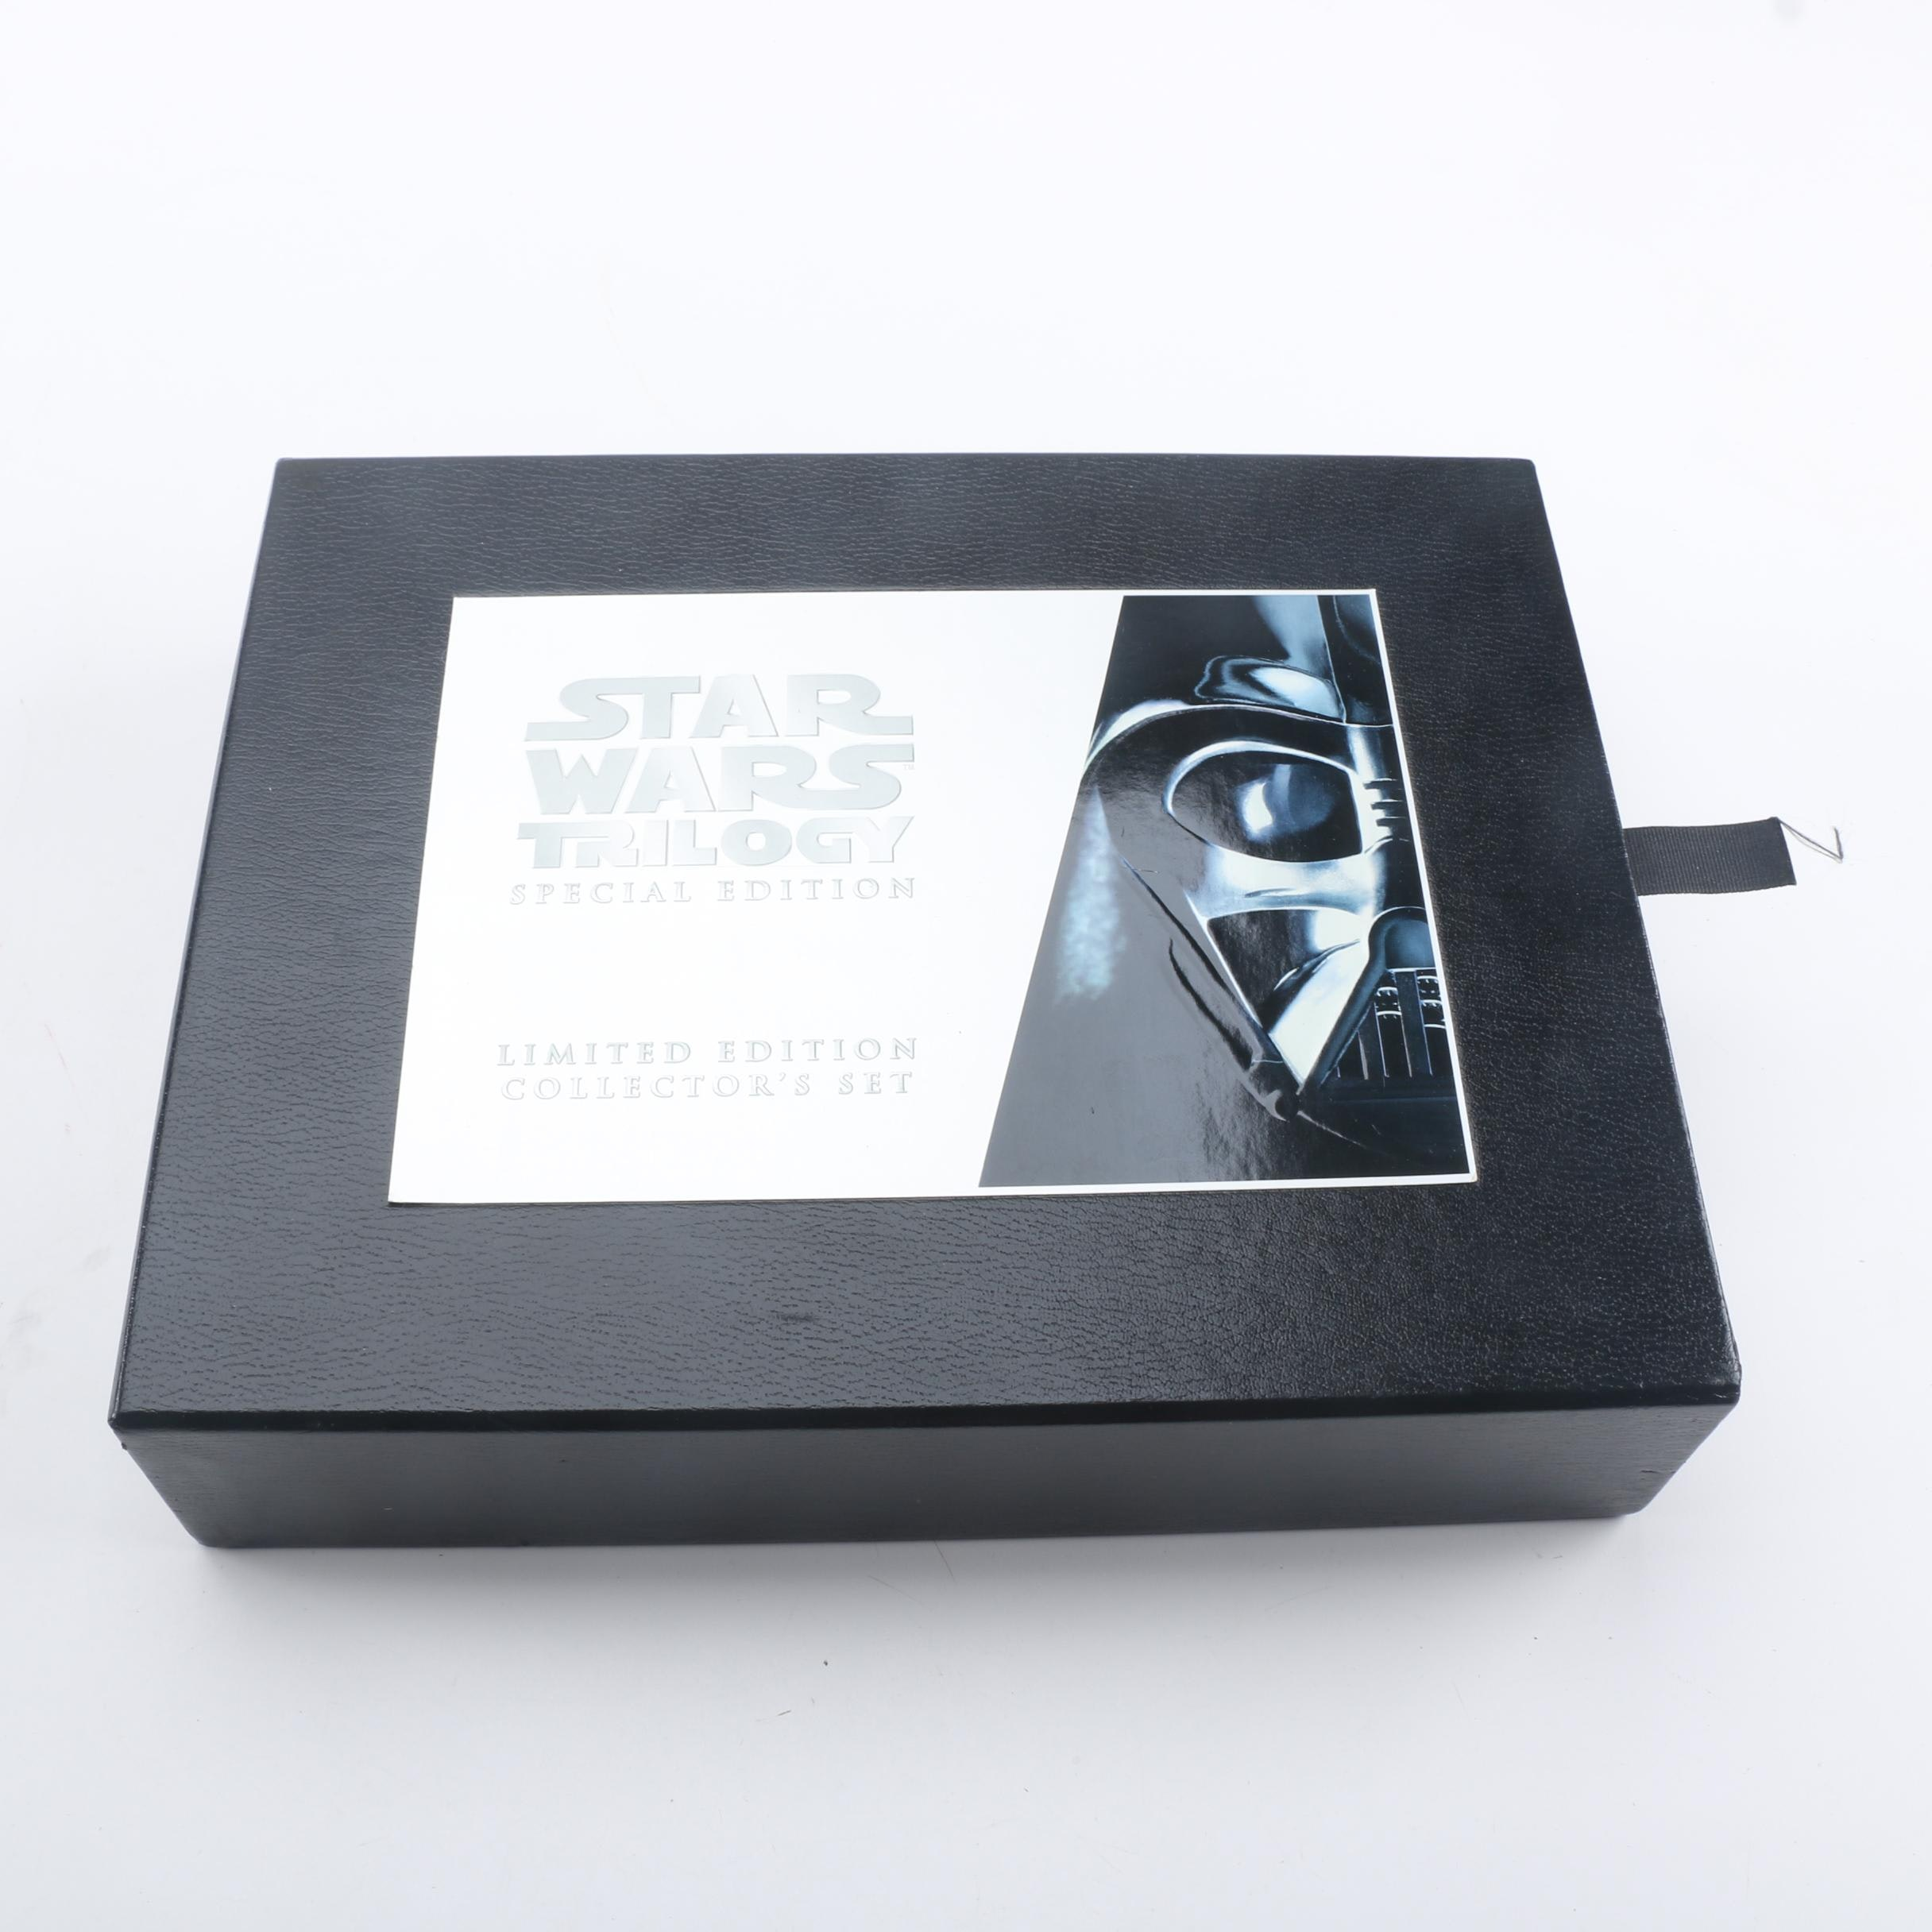 """Star Wars"" Special Limited Edition Collector's Set on Videotape"